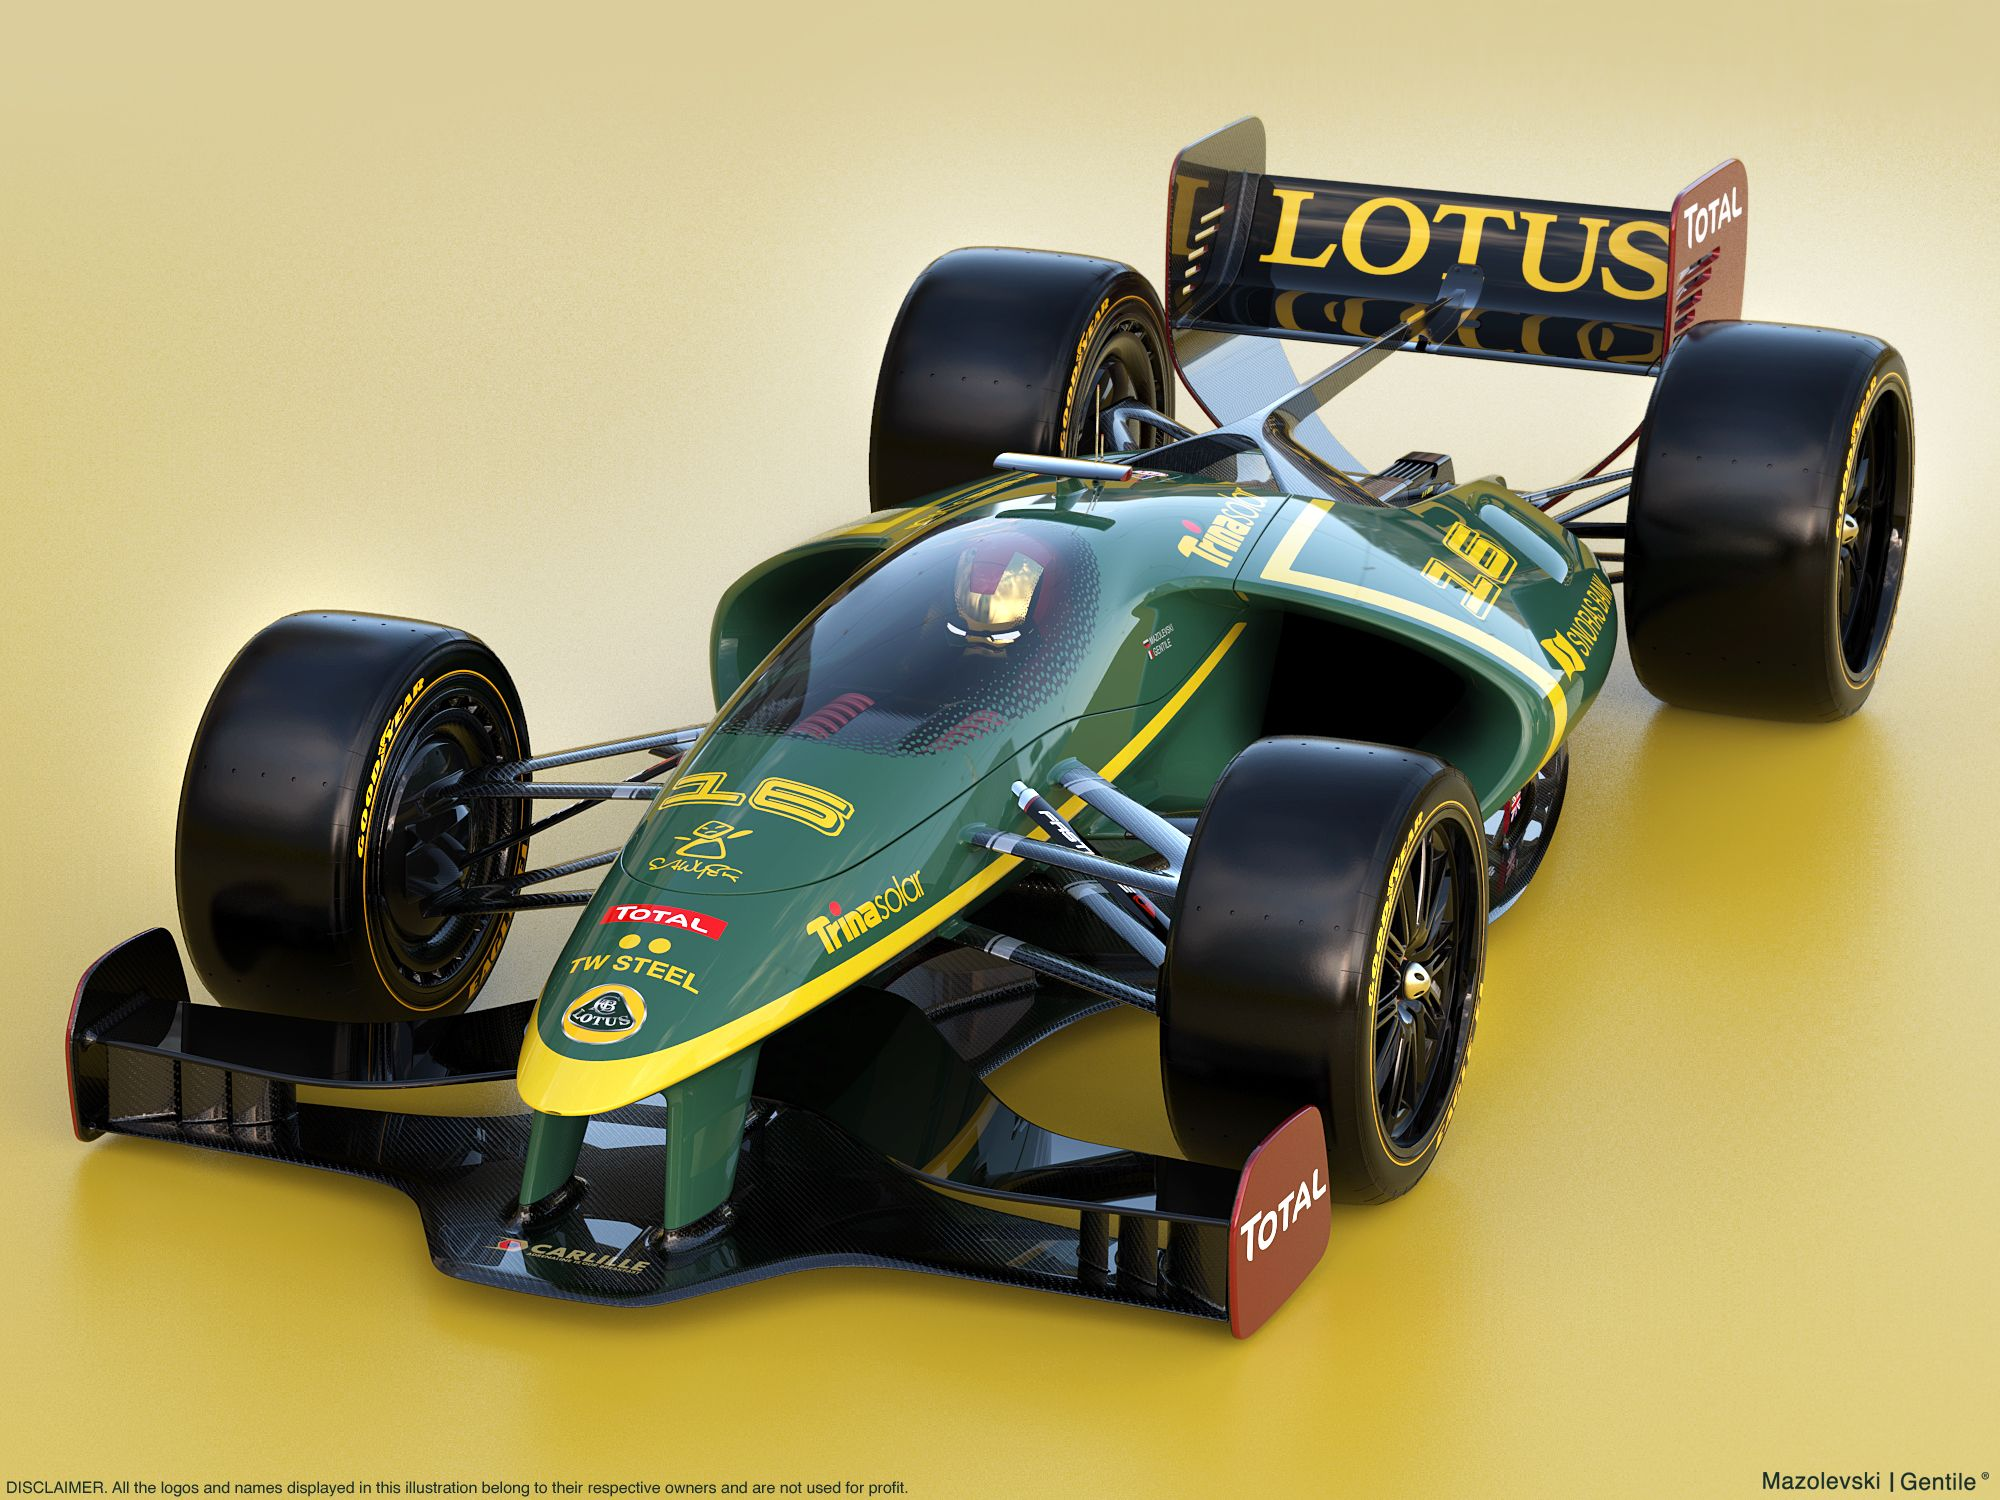 Lotus F1 Vlad Mazolevski And Matteo Gentile Collab On Behance